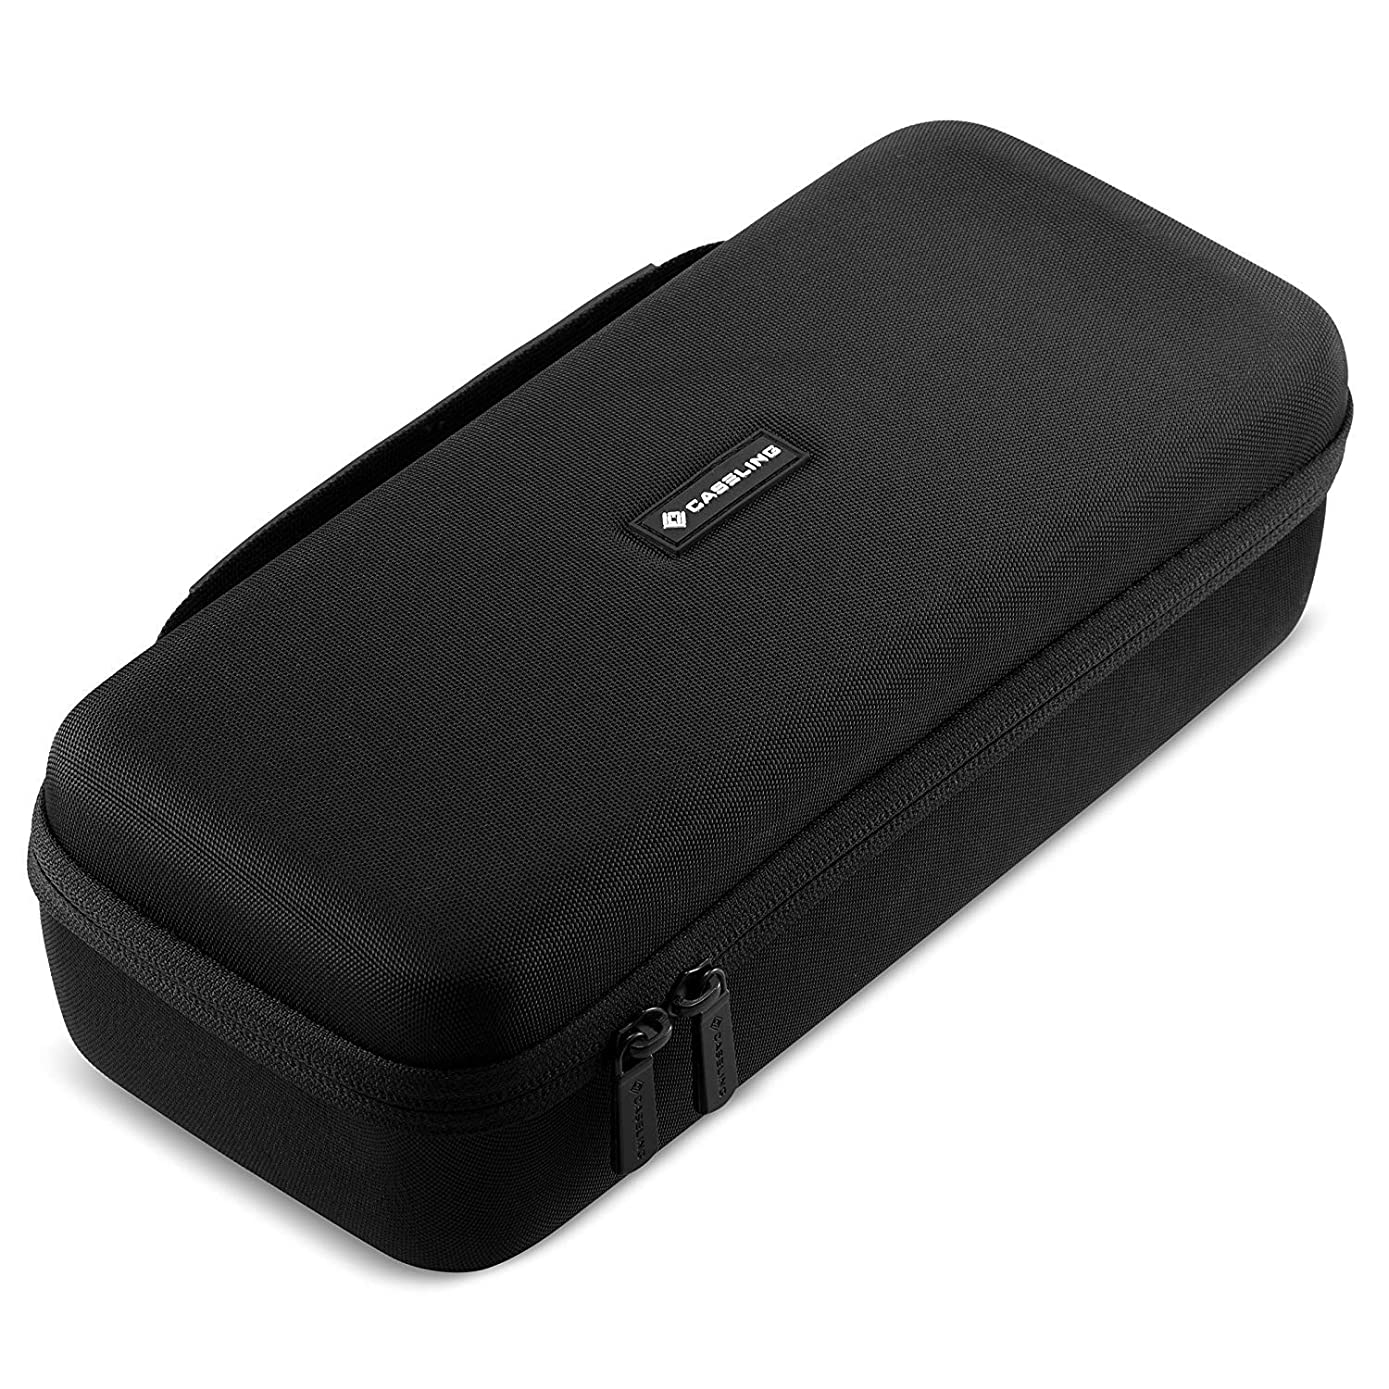 Caseling Hard Case - Compatible with G3500 6V/12V 3.5A UltraSafe Smart Battery Charger - with Mesh Pocket for Accessories